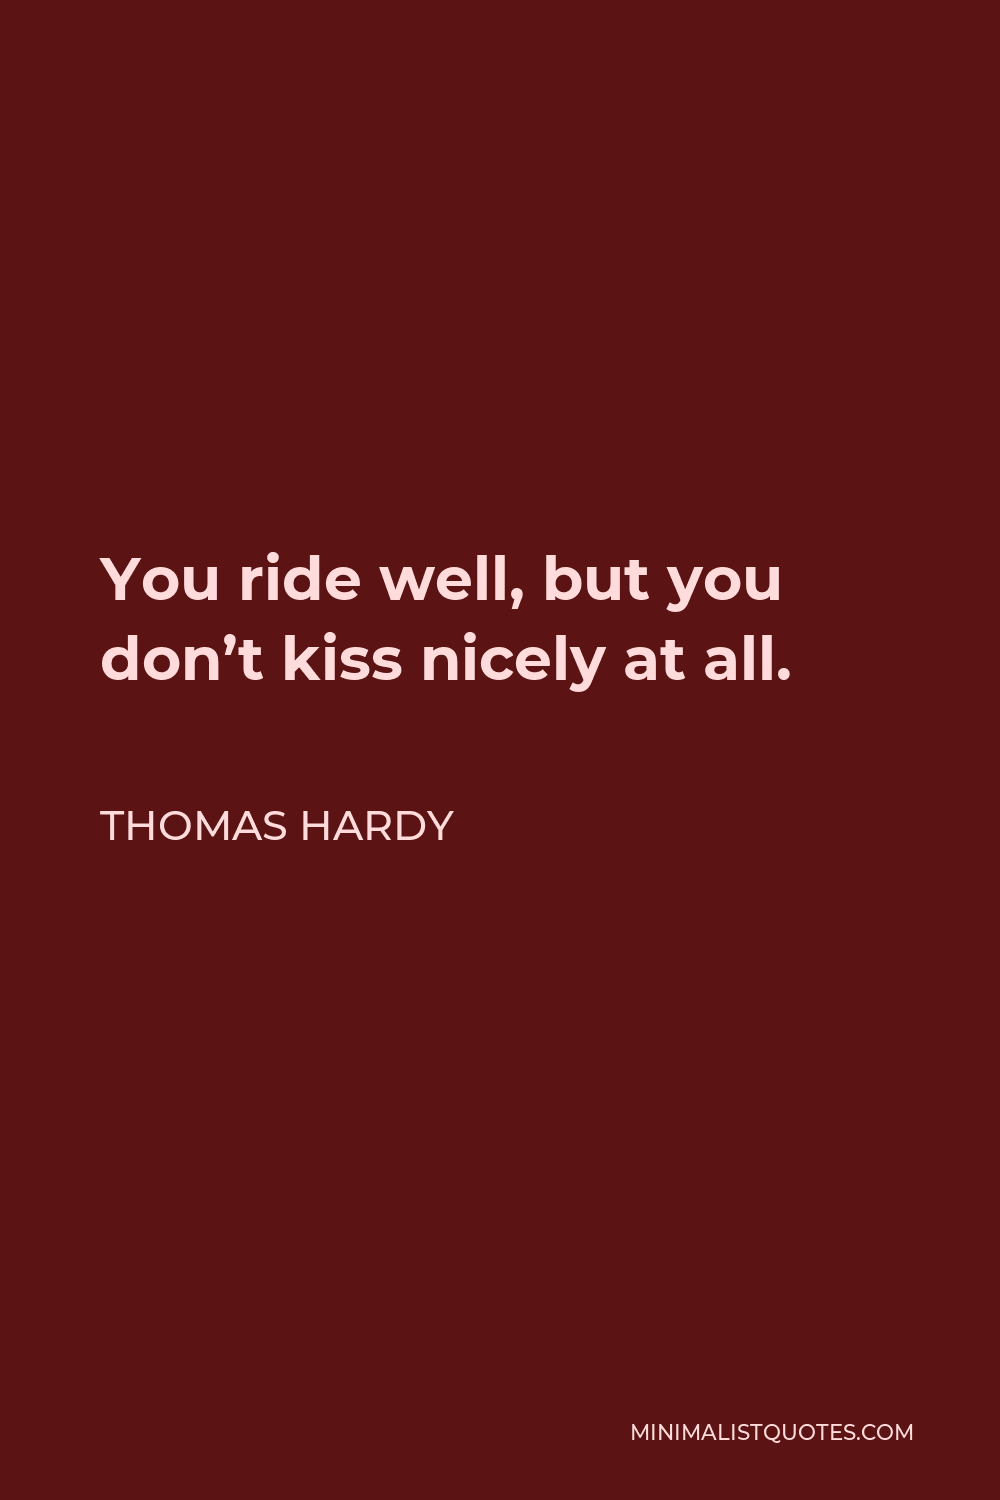 Thomas Hardy Quote - You ride well, but you don't kiss nicely at all.